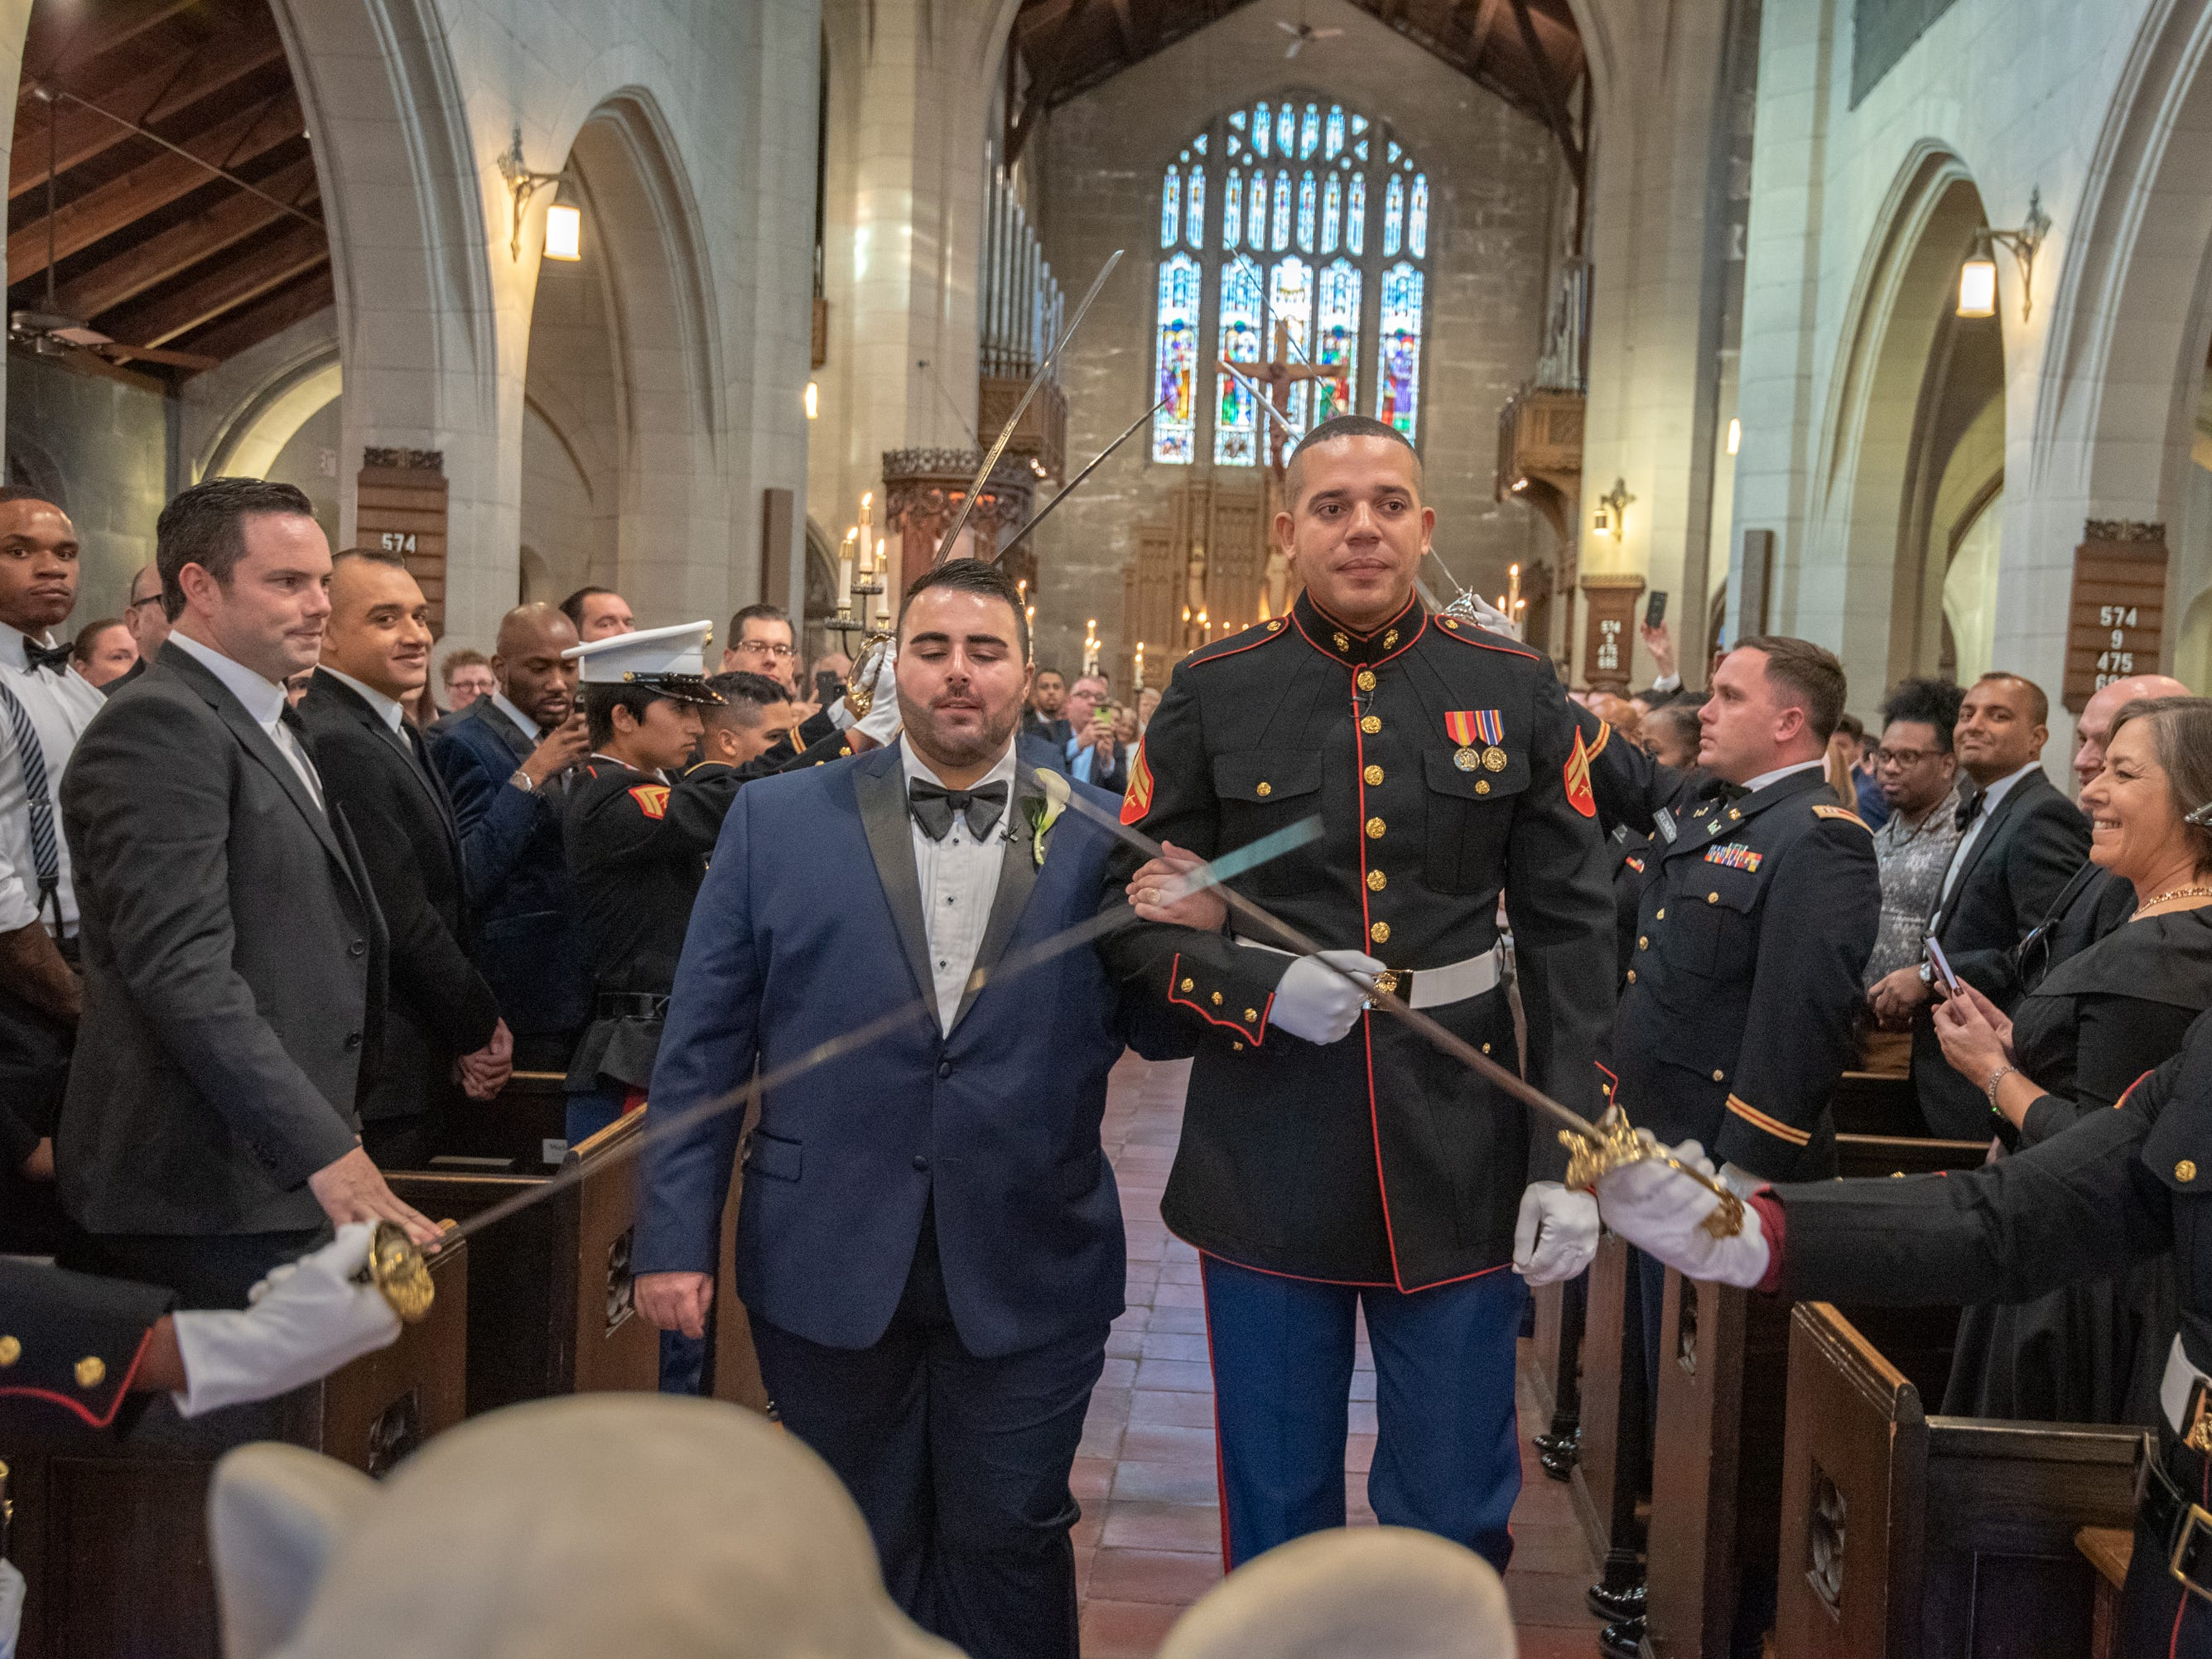 Christian Fuscarino, (left) Executive Director of Garden State Equality, and U.S. Marine Corporal Aaron Williams (in uniform) were married at Trinity Church in Asbury Park on Sunday, November 11, 2018.